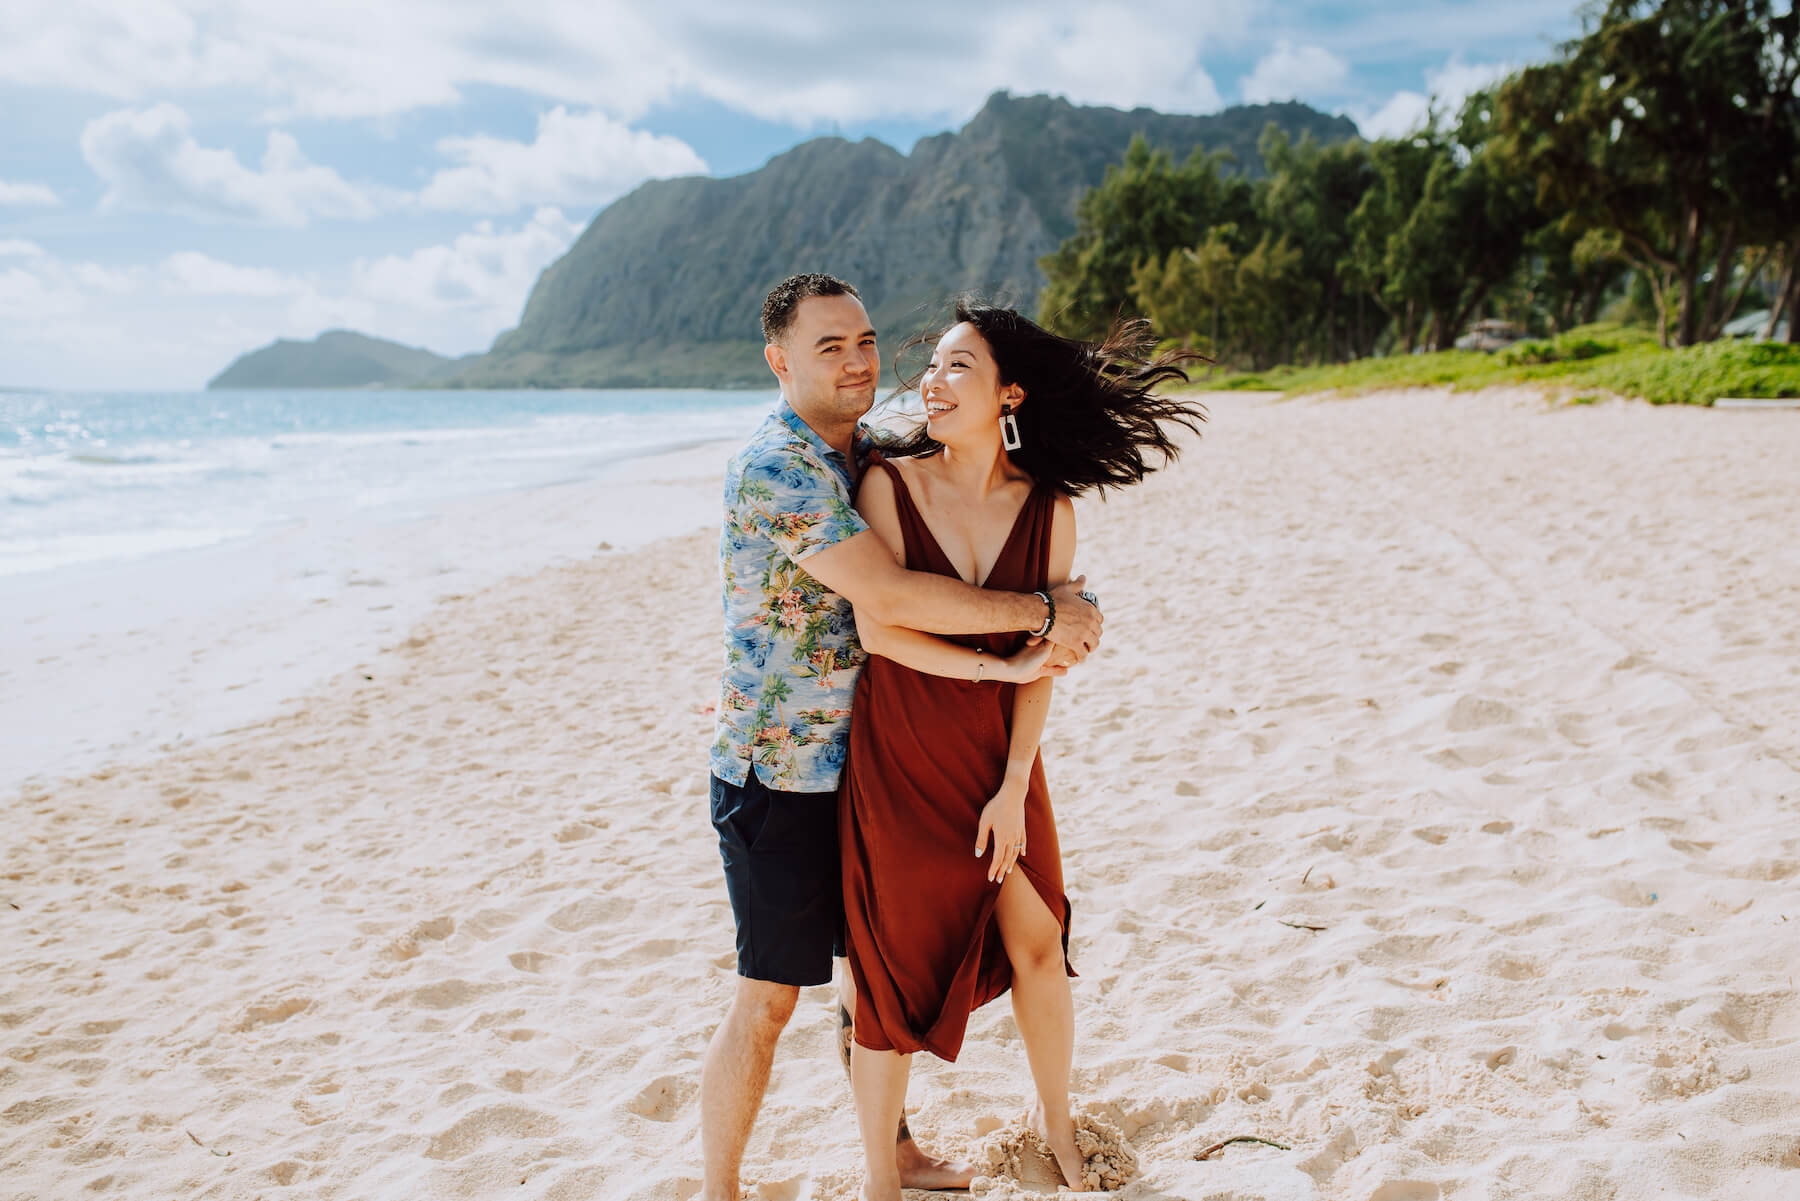 Couple embracing and being playful on the beach in Honolulu, Hawaii